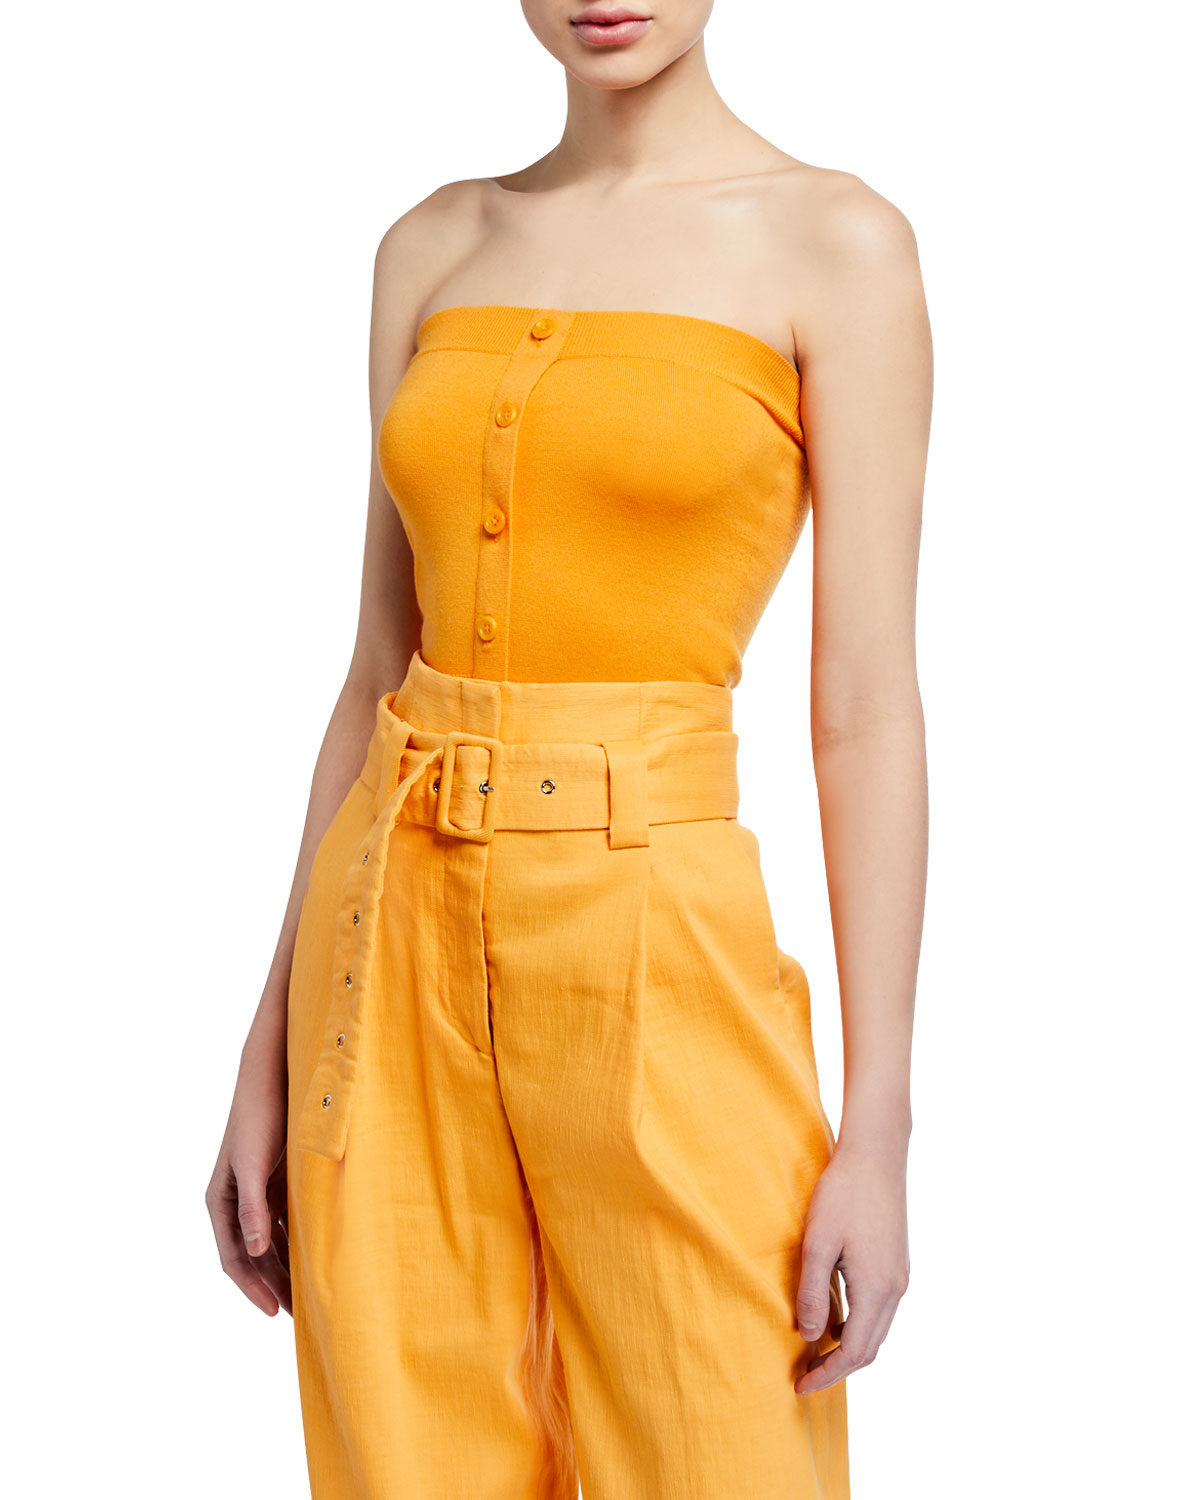 Sies Marjan Tops STRAPLESS BUTTON-FRONT TUBE TOP